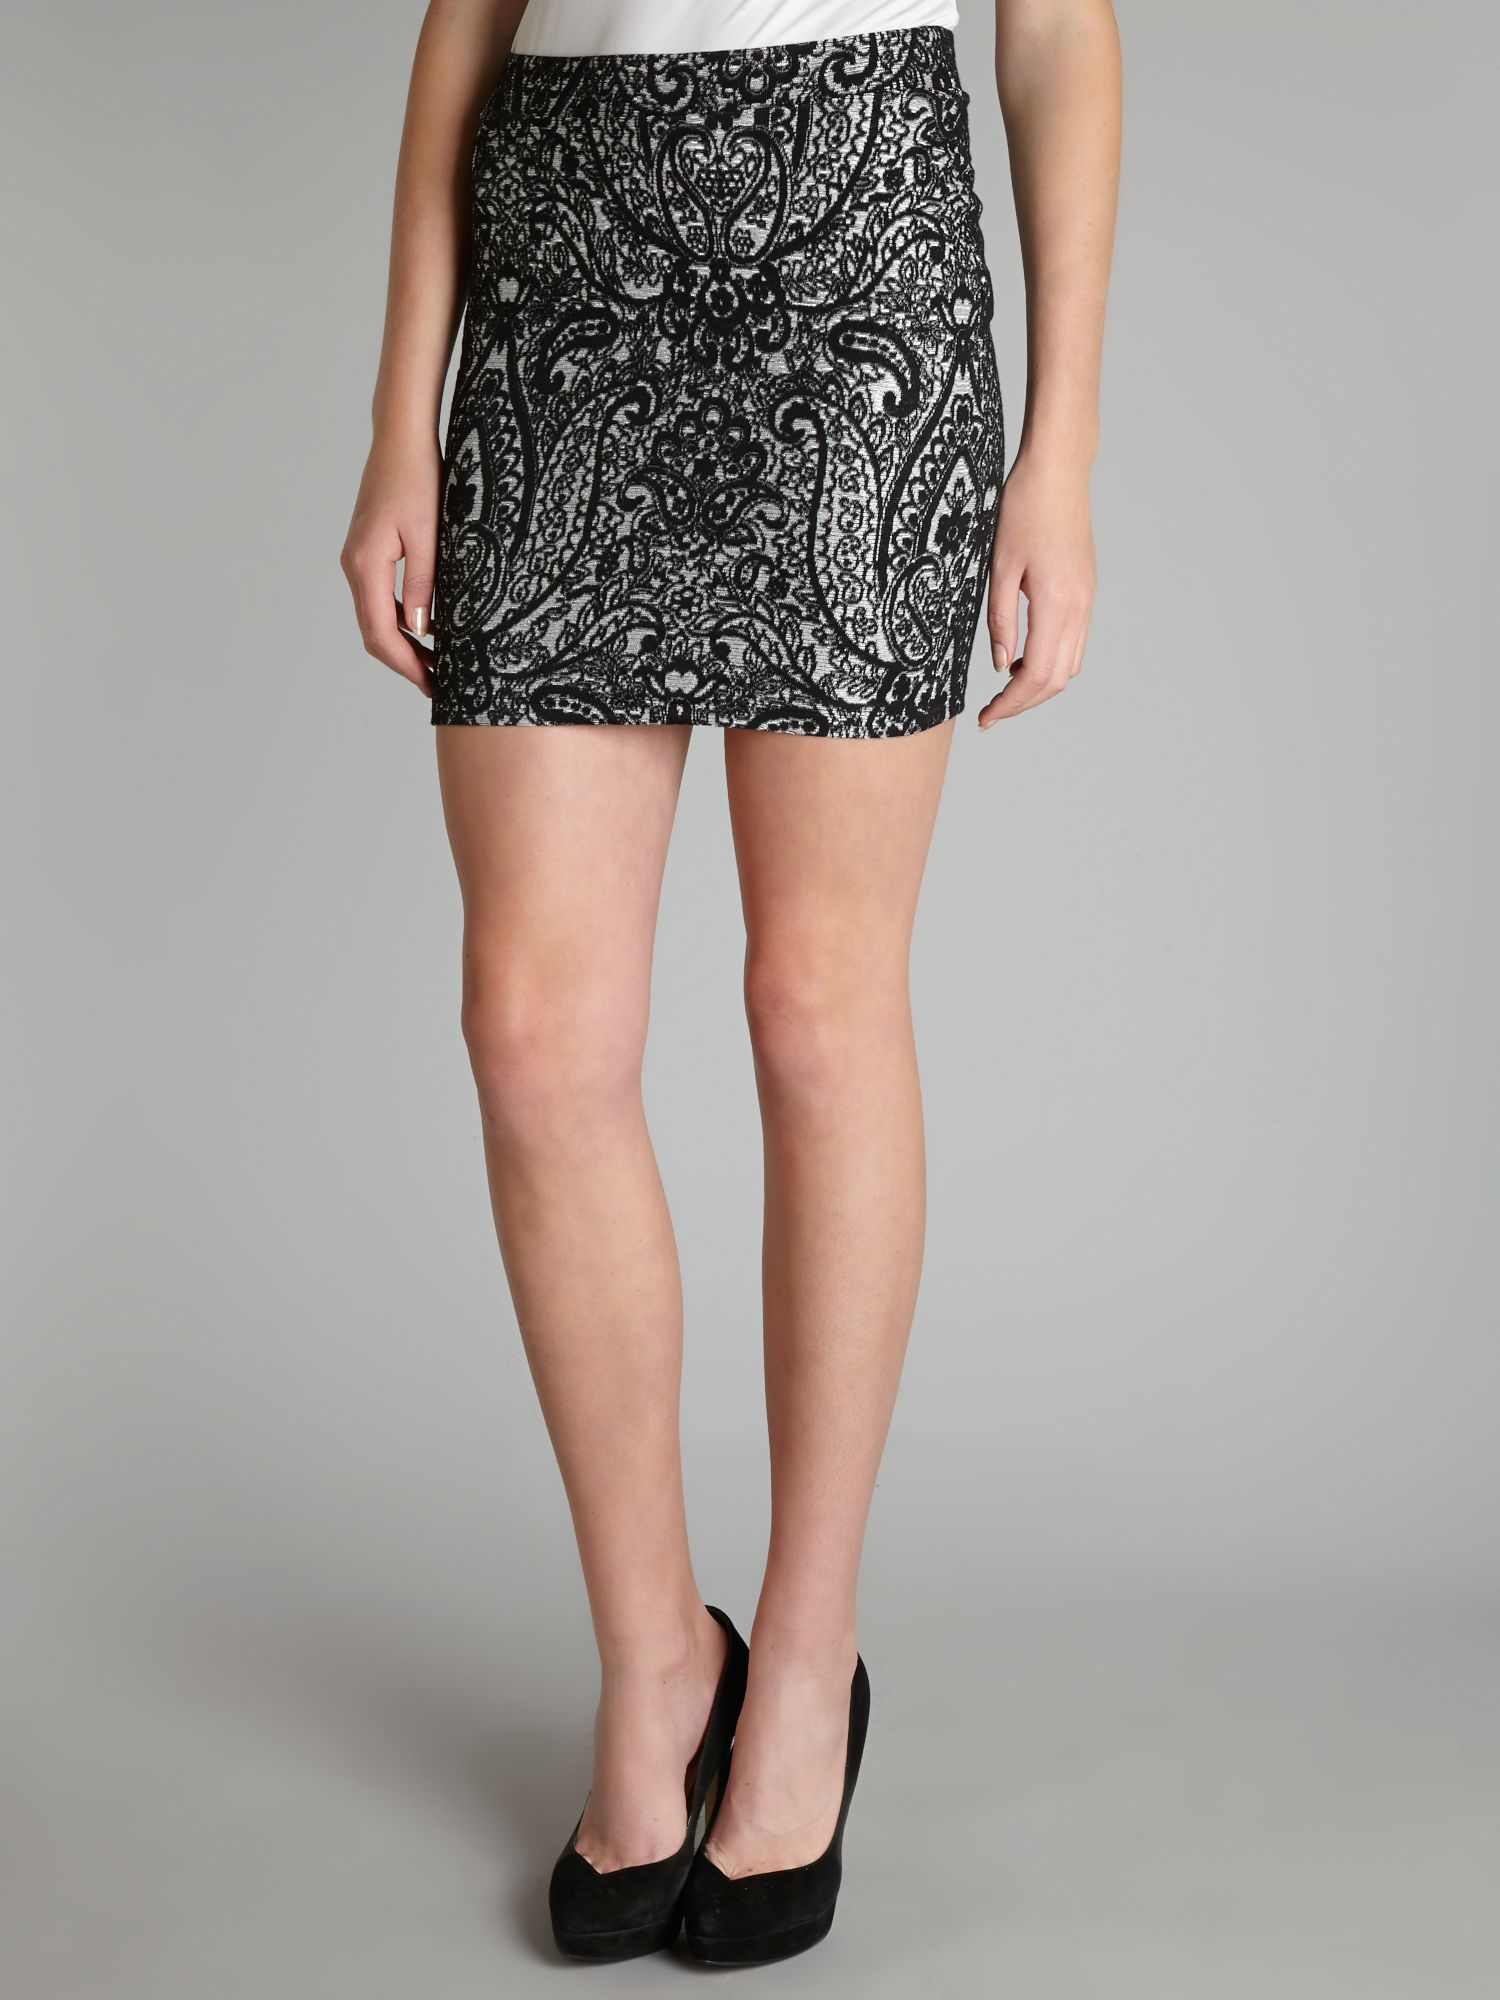 Lace bodycon skirt